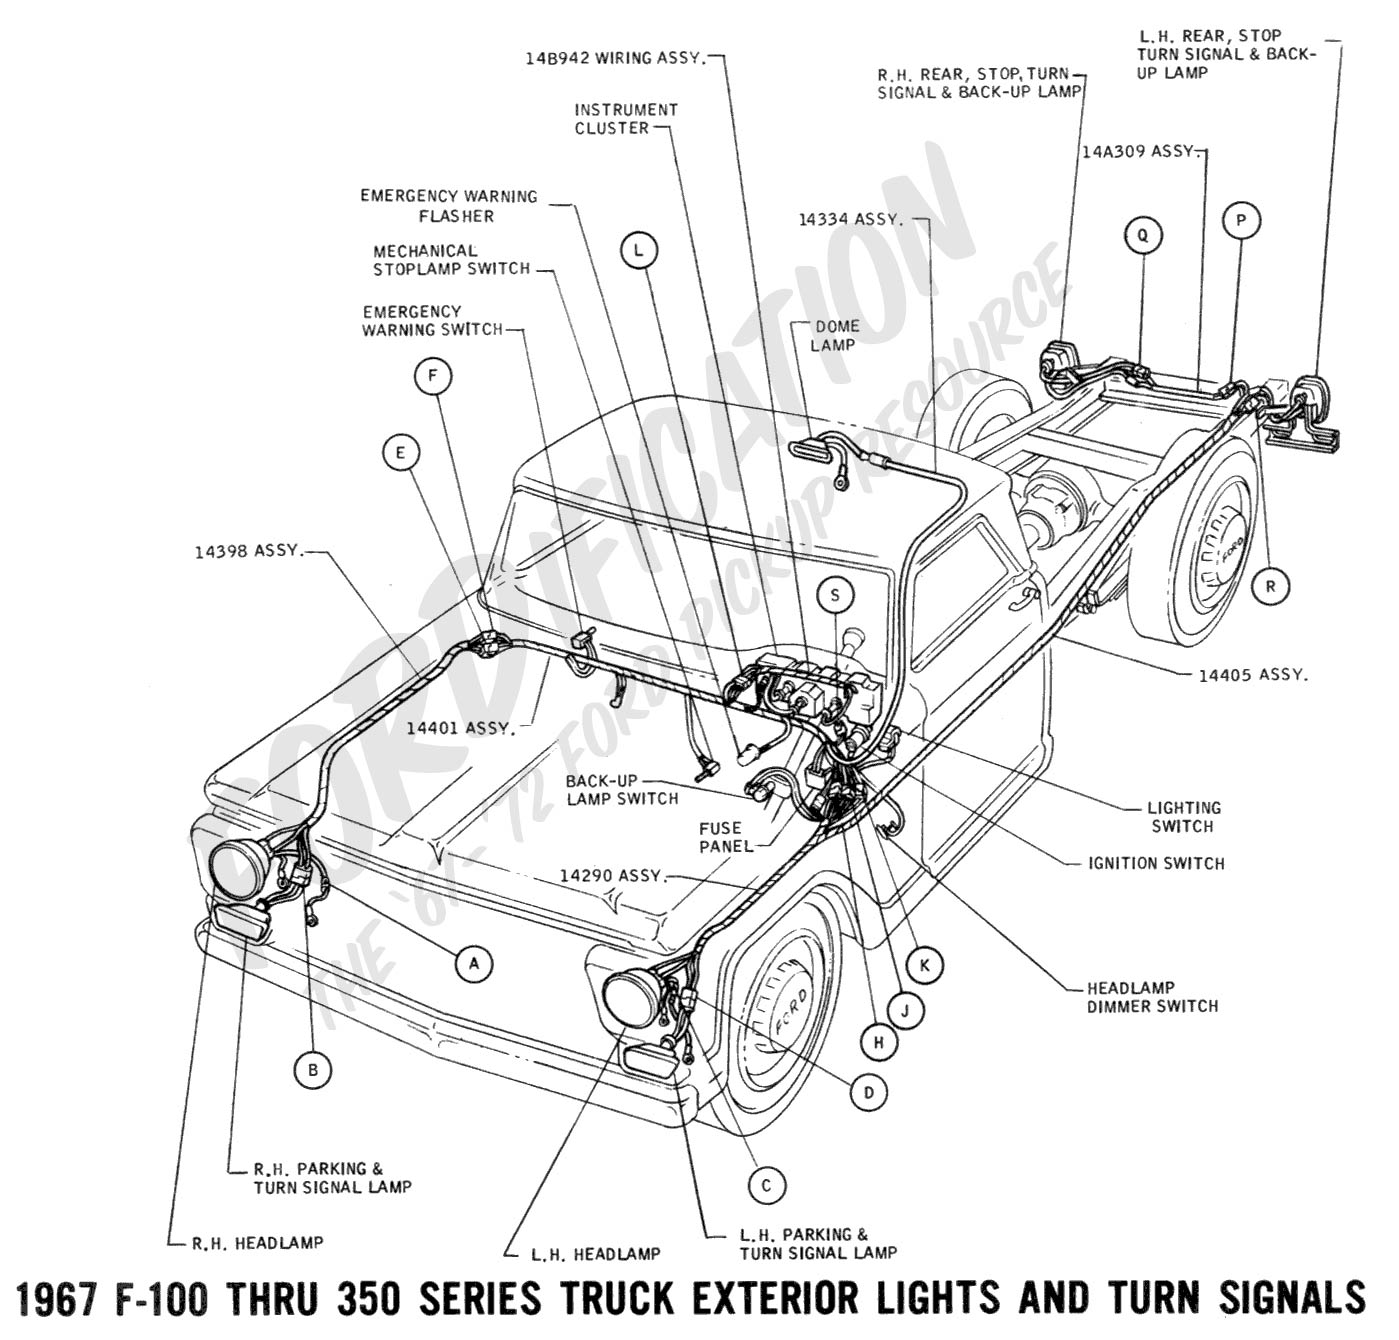 wiring 1967extlights01 ford truck technical drawings and schematics section h wiring 2013 Ford F350 Wiring Diagram at edmiracle.co